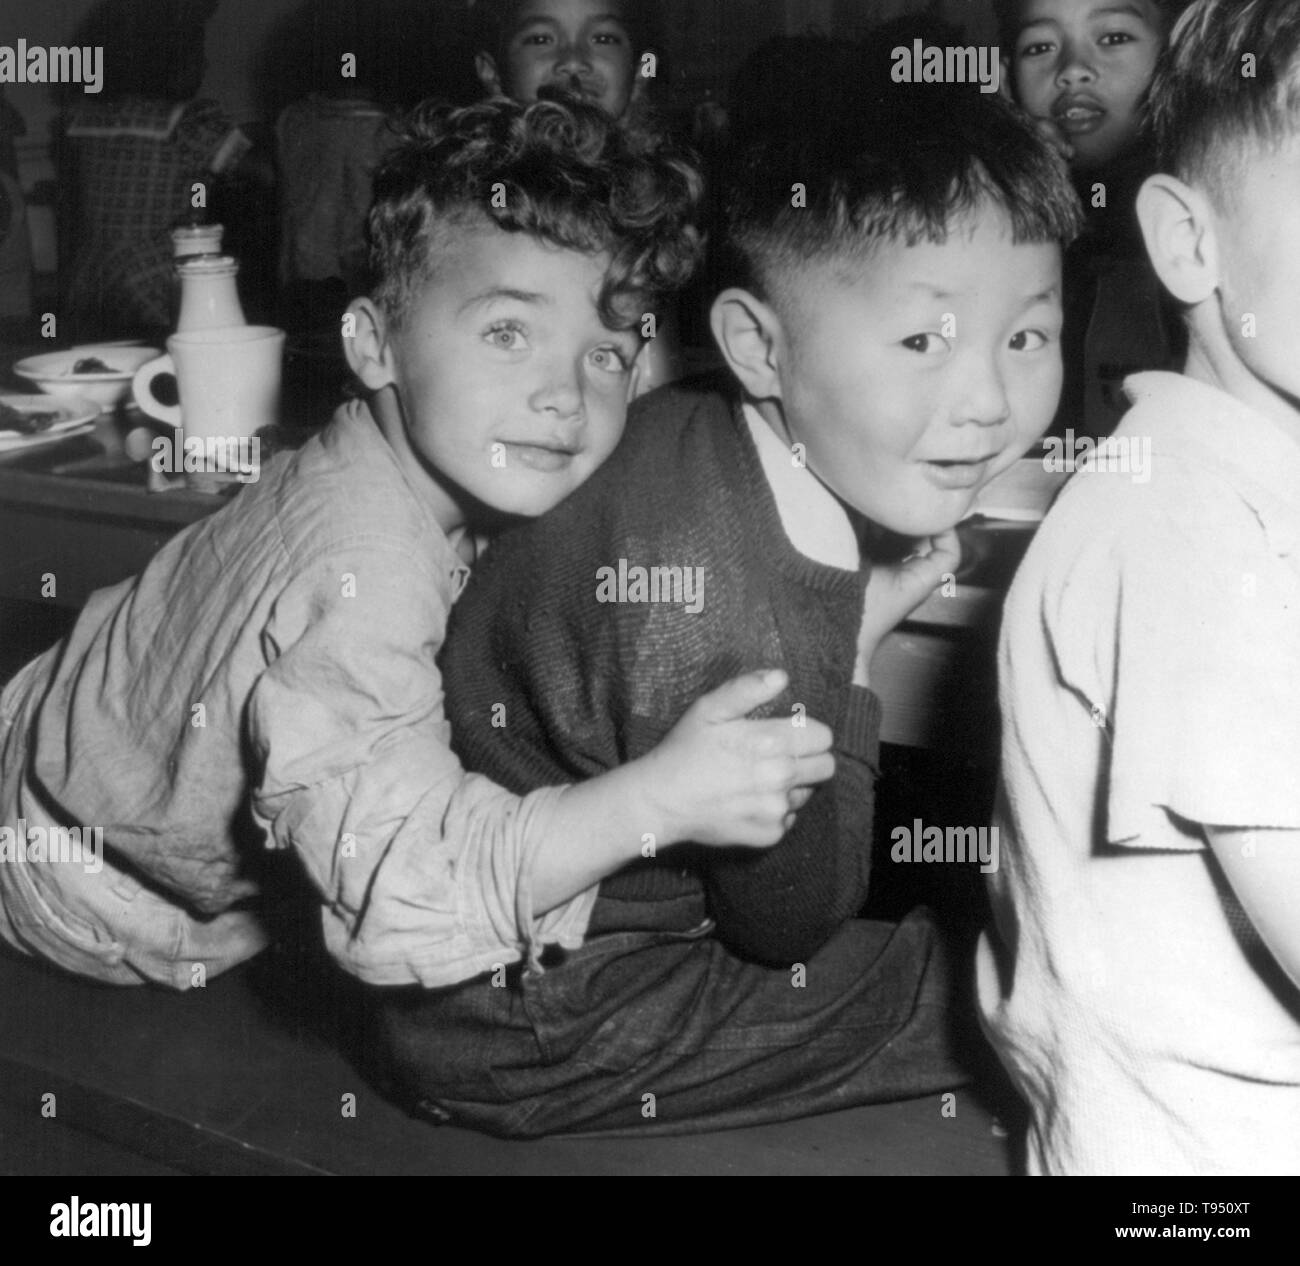 Entitled: 'A lunch hour scene at the Weill public school in the international section. Many children of Japanese ancestry like the boy shown here with his chum, were evacuated with their parents from this neighborhood.' The internment of Japanese-Americans during WWII was the forced relocation and incarceration in camps of 110,000-120,000 people of Japanese ancestry ordered by President Roosevelt shortly after Japan's attack on Pearl Harbor. Japanese-Americans were incarcerated based on local population concentrations and regional politics. The internment is considered to have resulted more fr - Stock Image